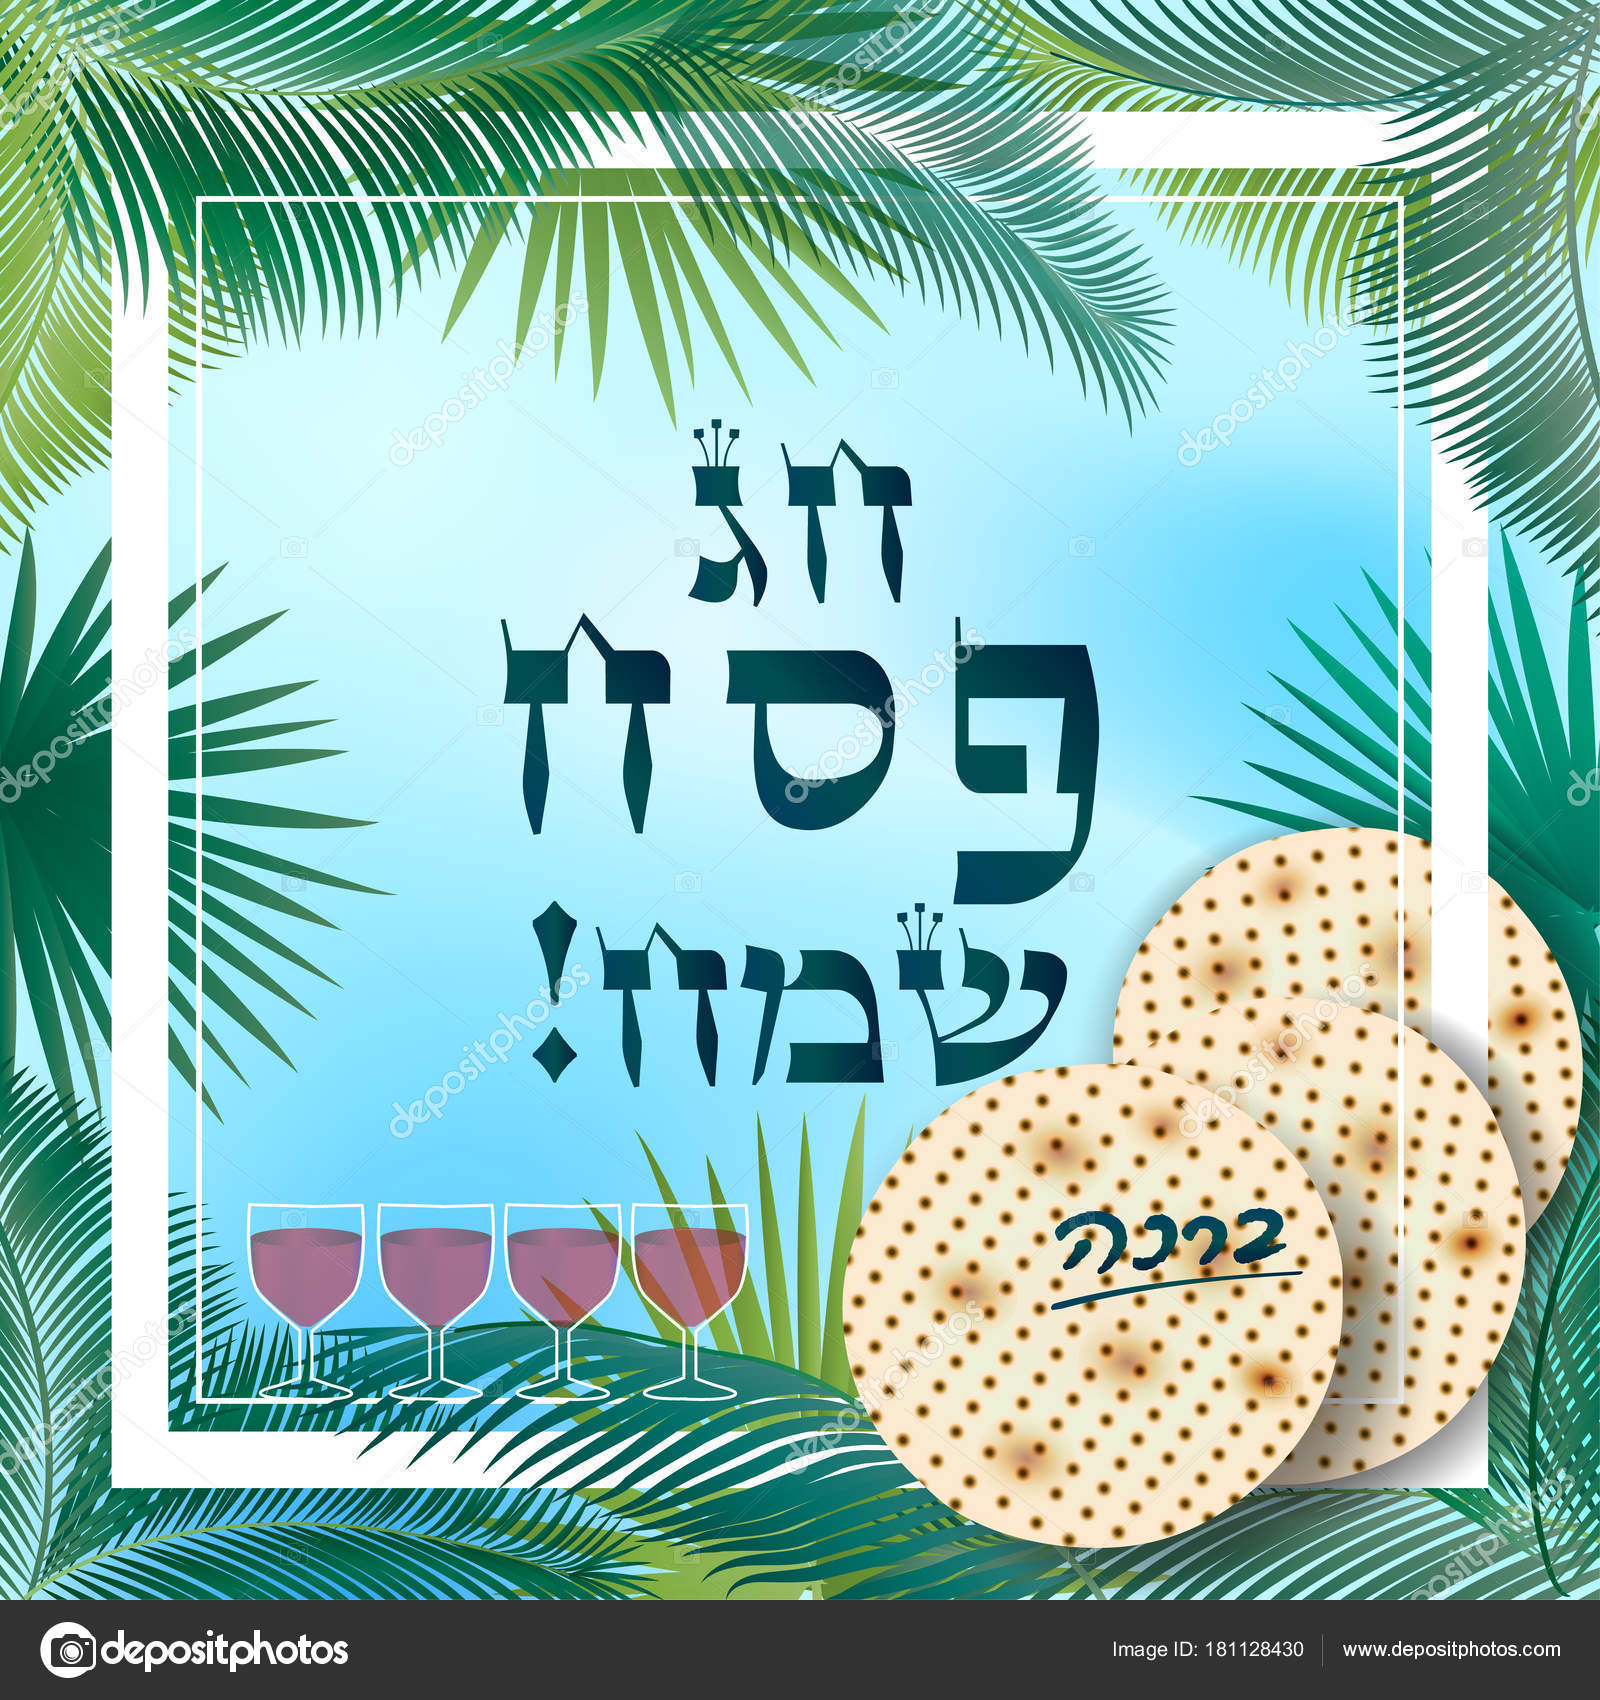 Happy passover holiday translate hebrew lettering greeting card happy passover holiday translate from hebrew lettering greeting card decorative ornamental palm leaves frame four wine glass matza is an jewish m4hsunfo